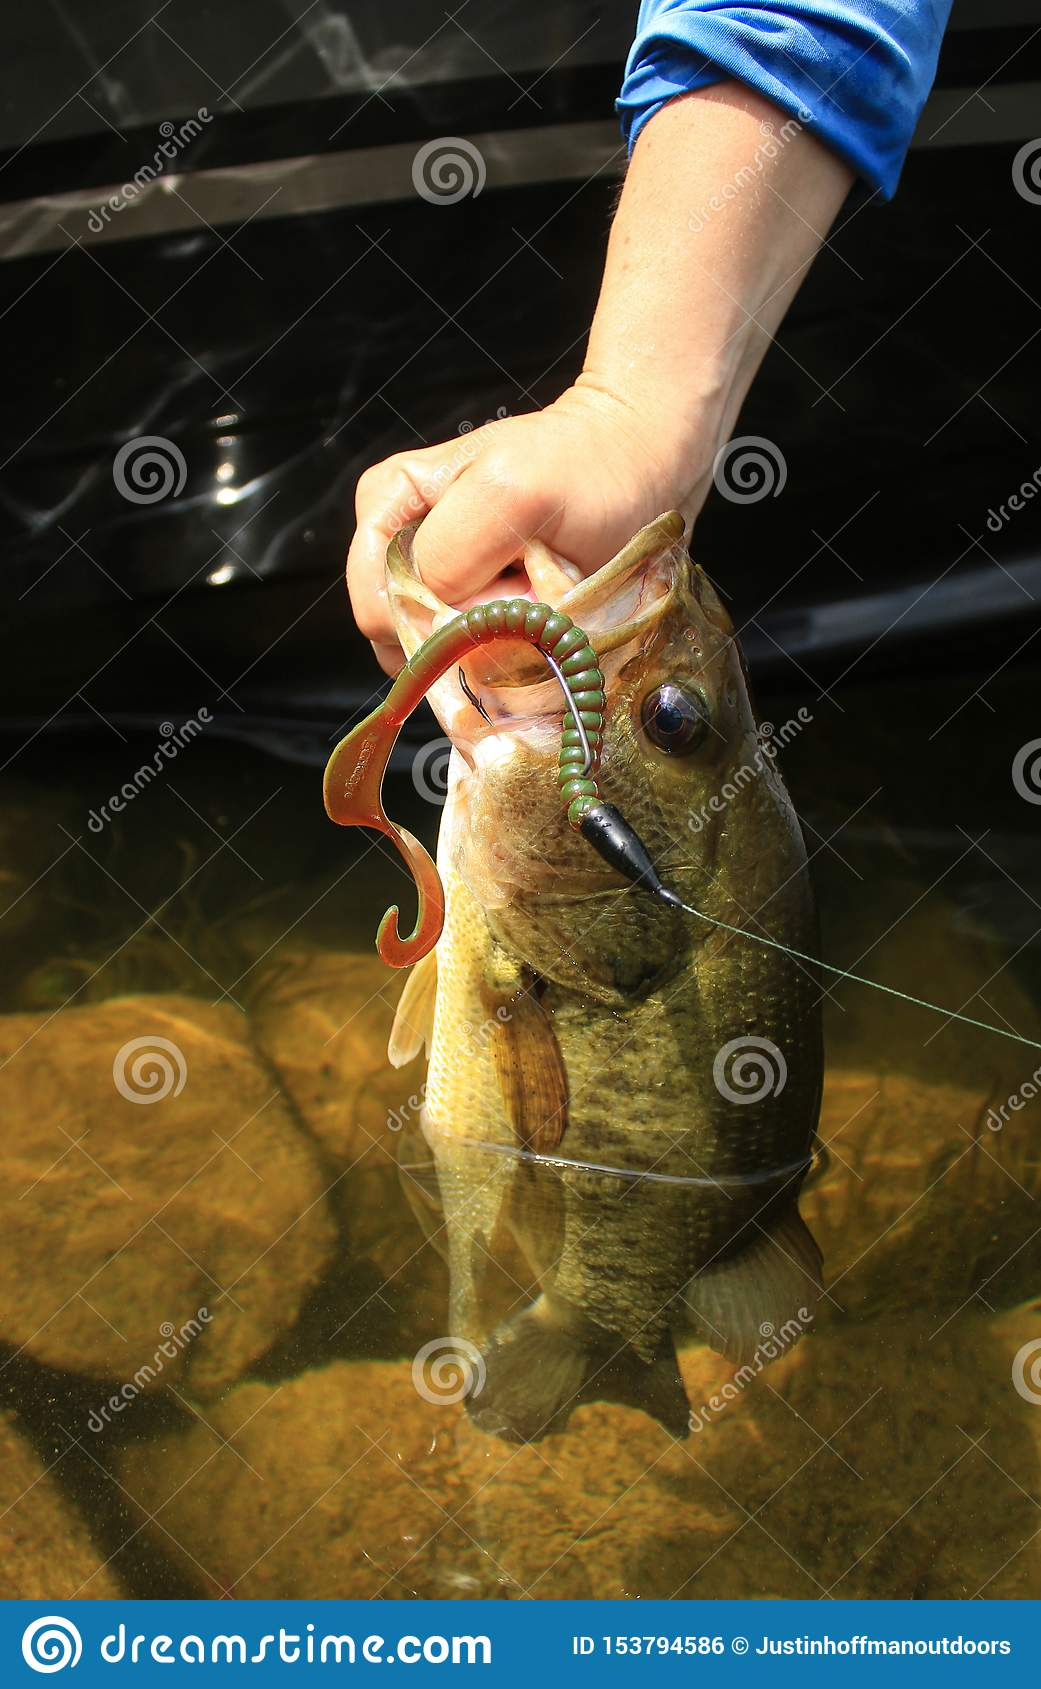 Large Mouth Bass Fishing With Plastic Worm Lure